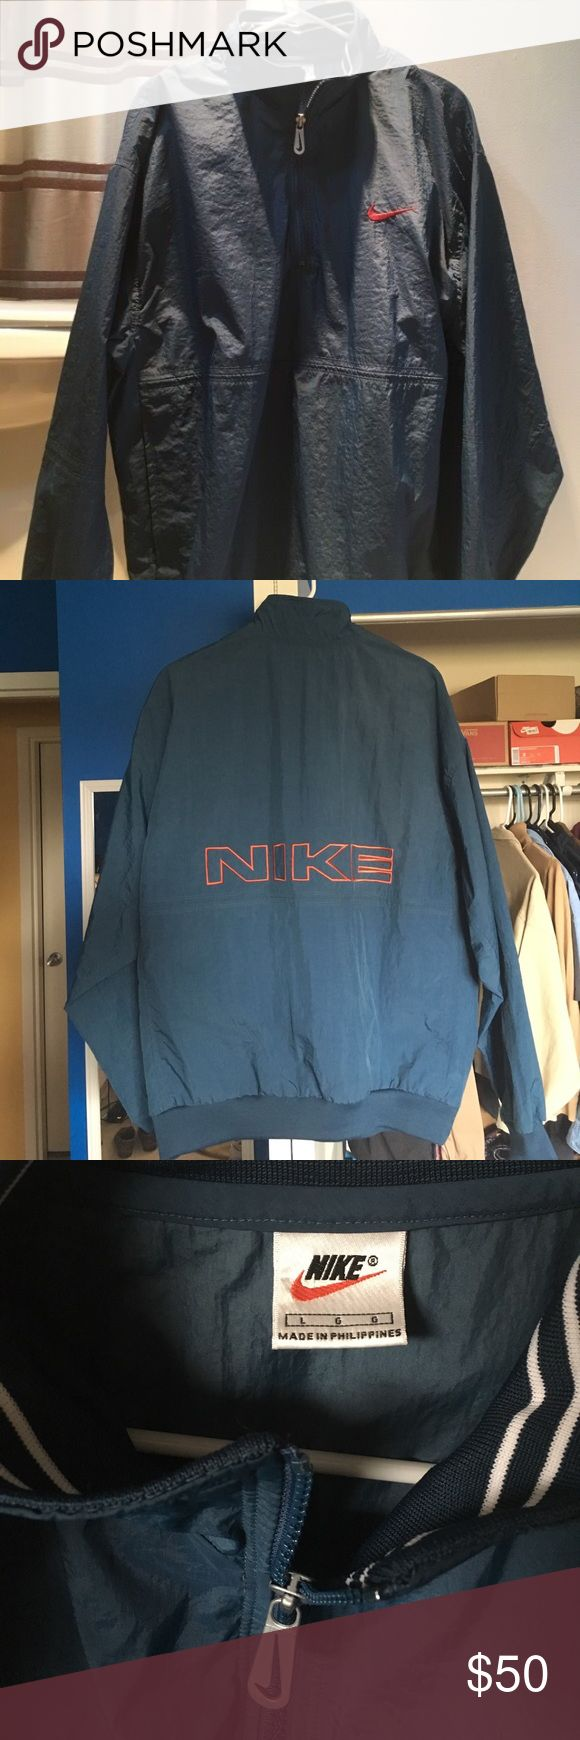 Vintage Turquoise Nike Pullover Windbreaker Jacket Vintage Nike turquoise blue, with dark red accents on the swoosh and back letters. Has a kangaroo hoodie pooch (side pockets). Perfect condition: no holes, rips, or tears. Just some wrinkles as seen in the photos. Size: Large Nike Jackets & Coats Windbreakers